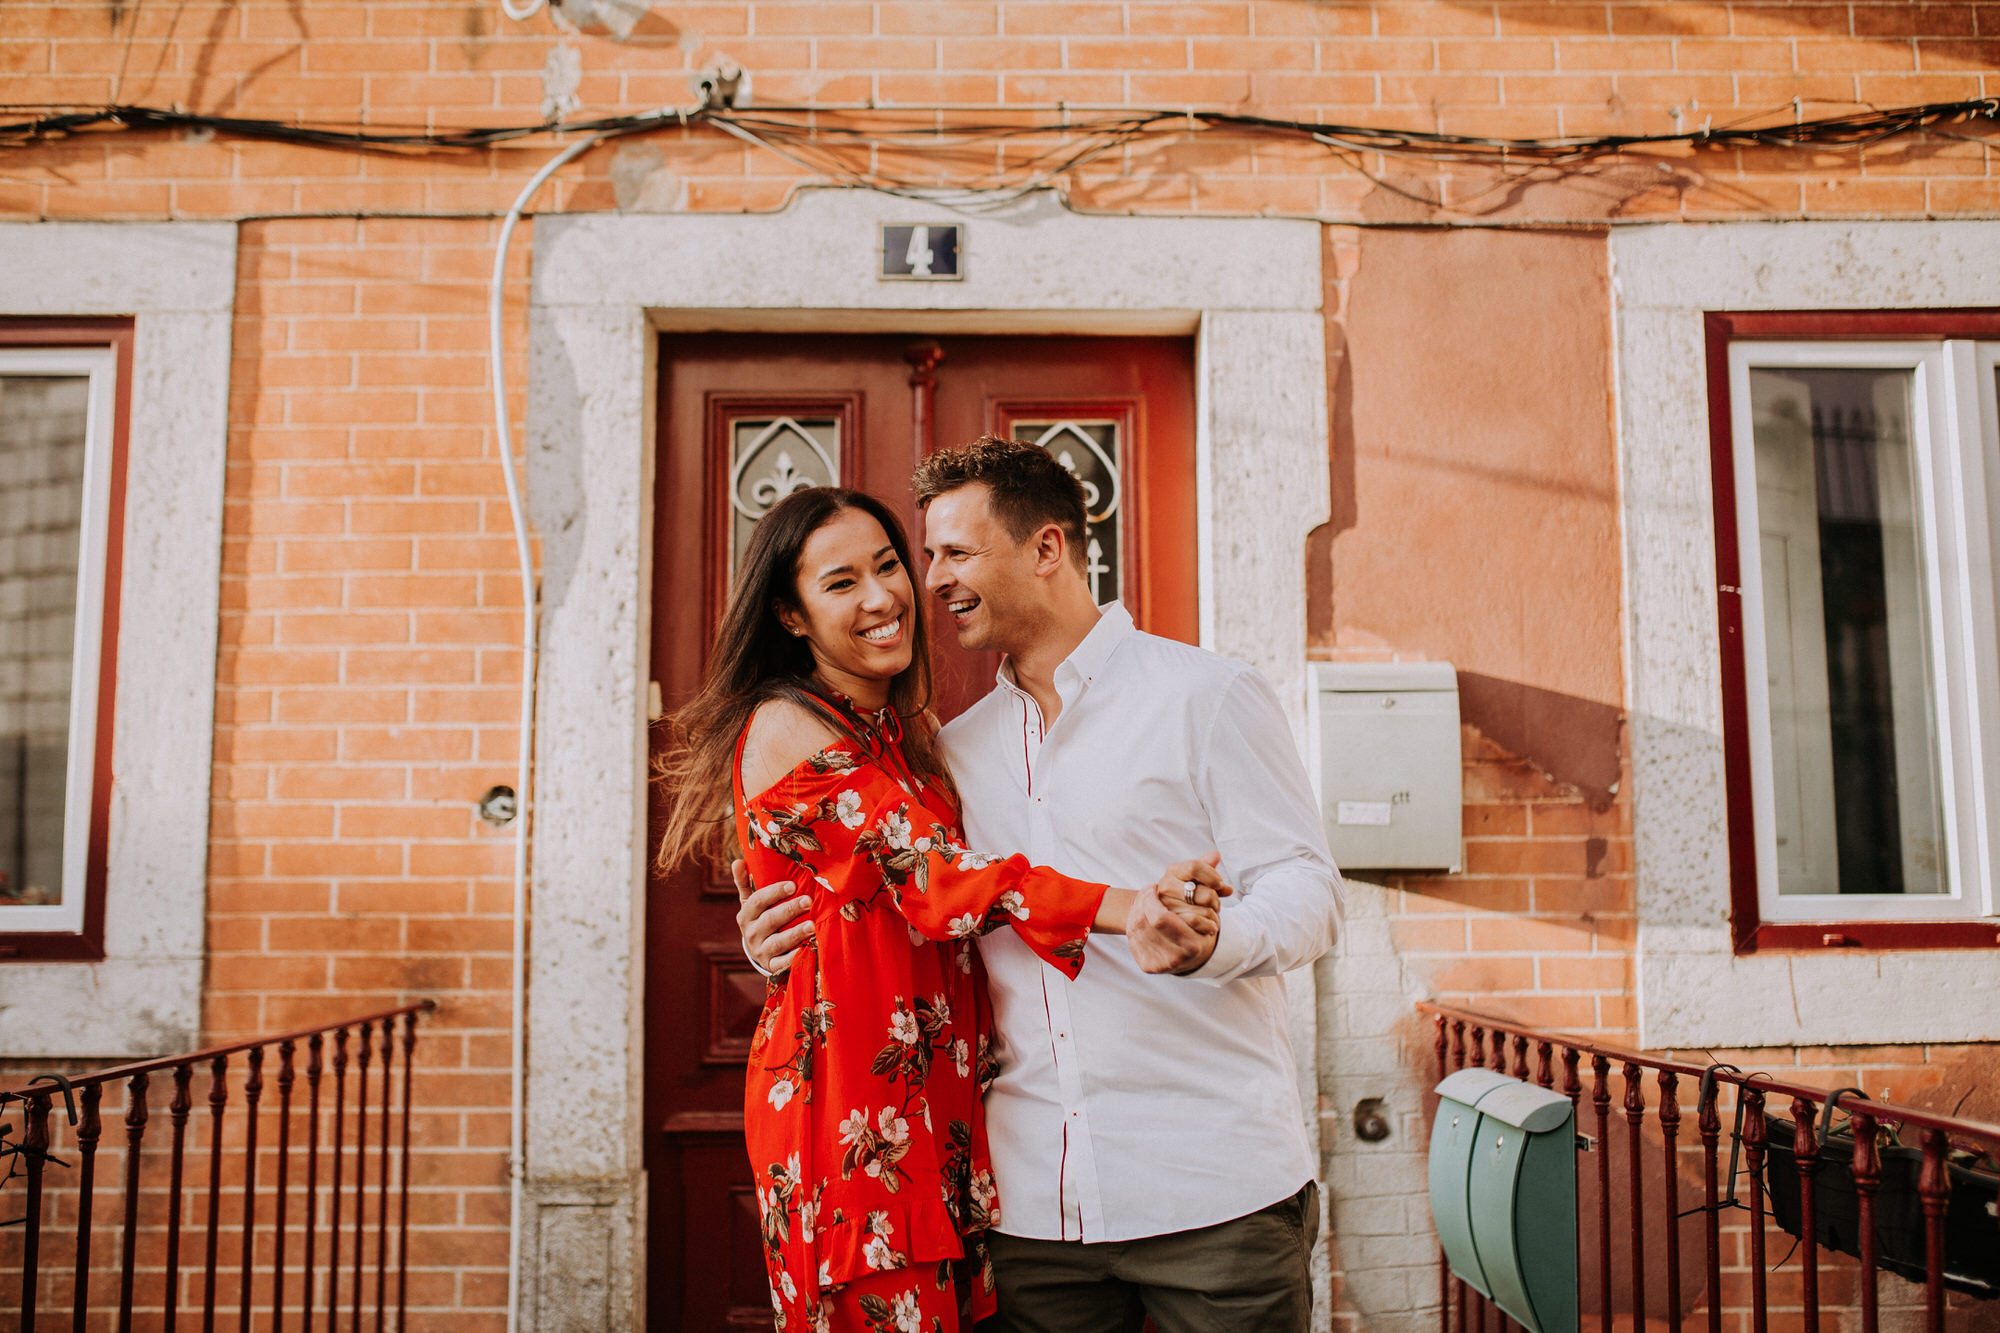 06-sessao-noivado-engagement-love-session-Sintra-lisboa-town-wedding-photography-photographer-natural-best-venue-planner-destination-filipe-santiago-fotografia-lifestyle-documentary